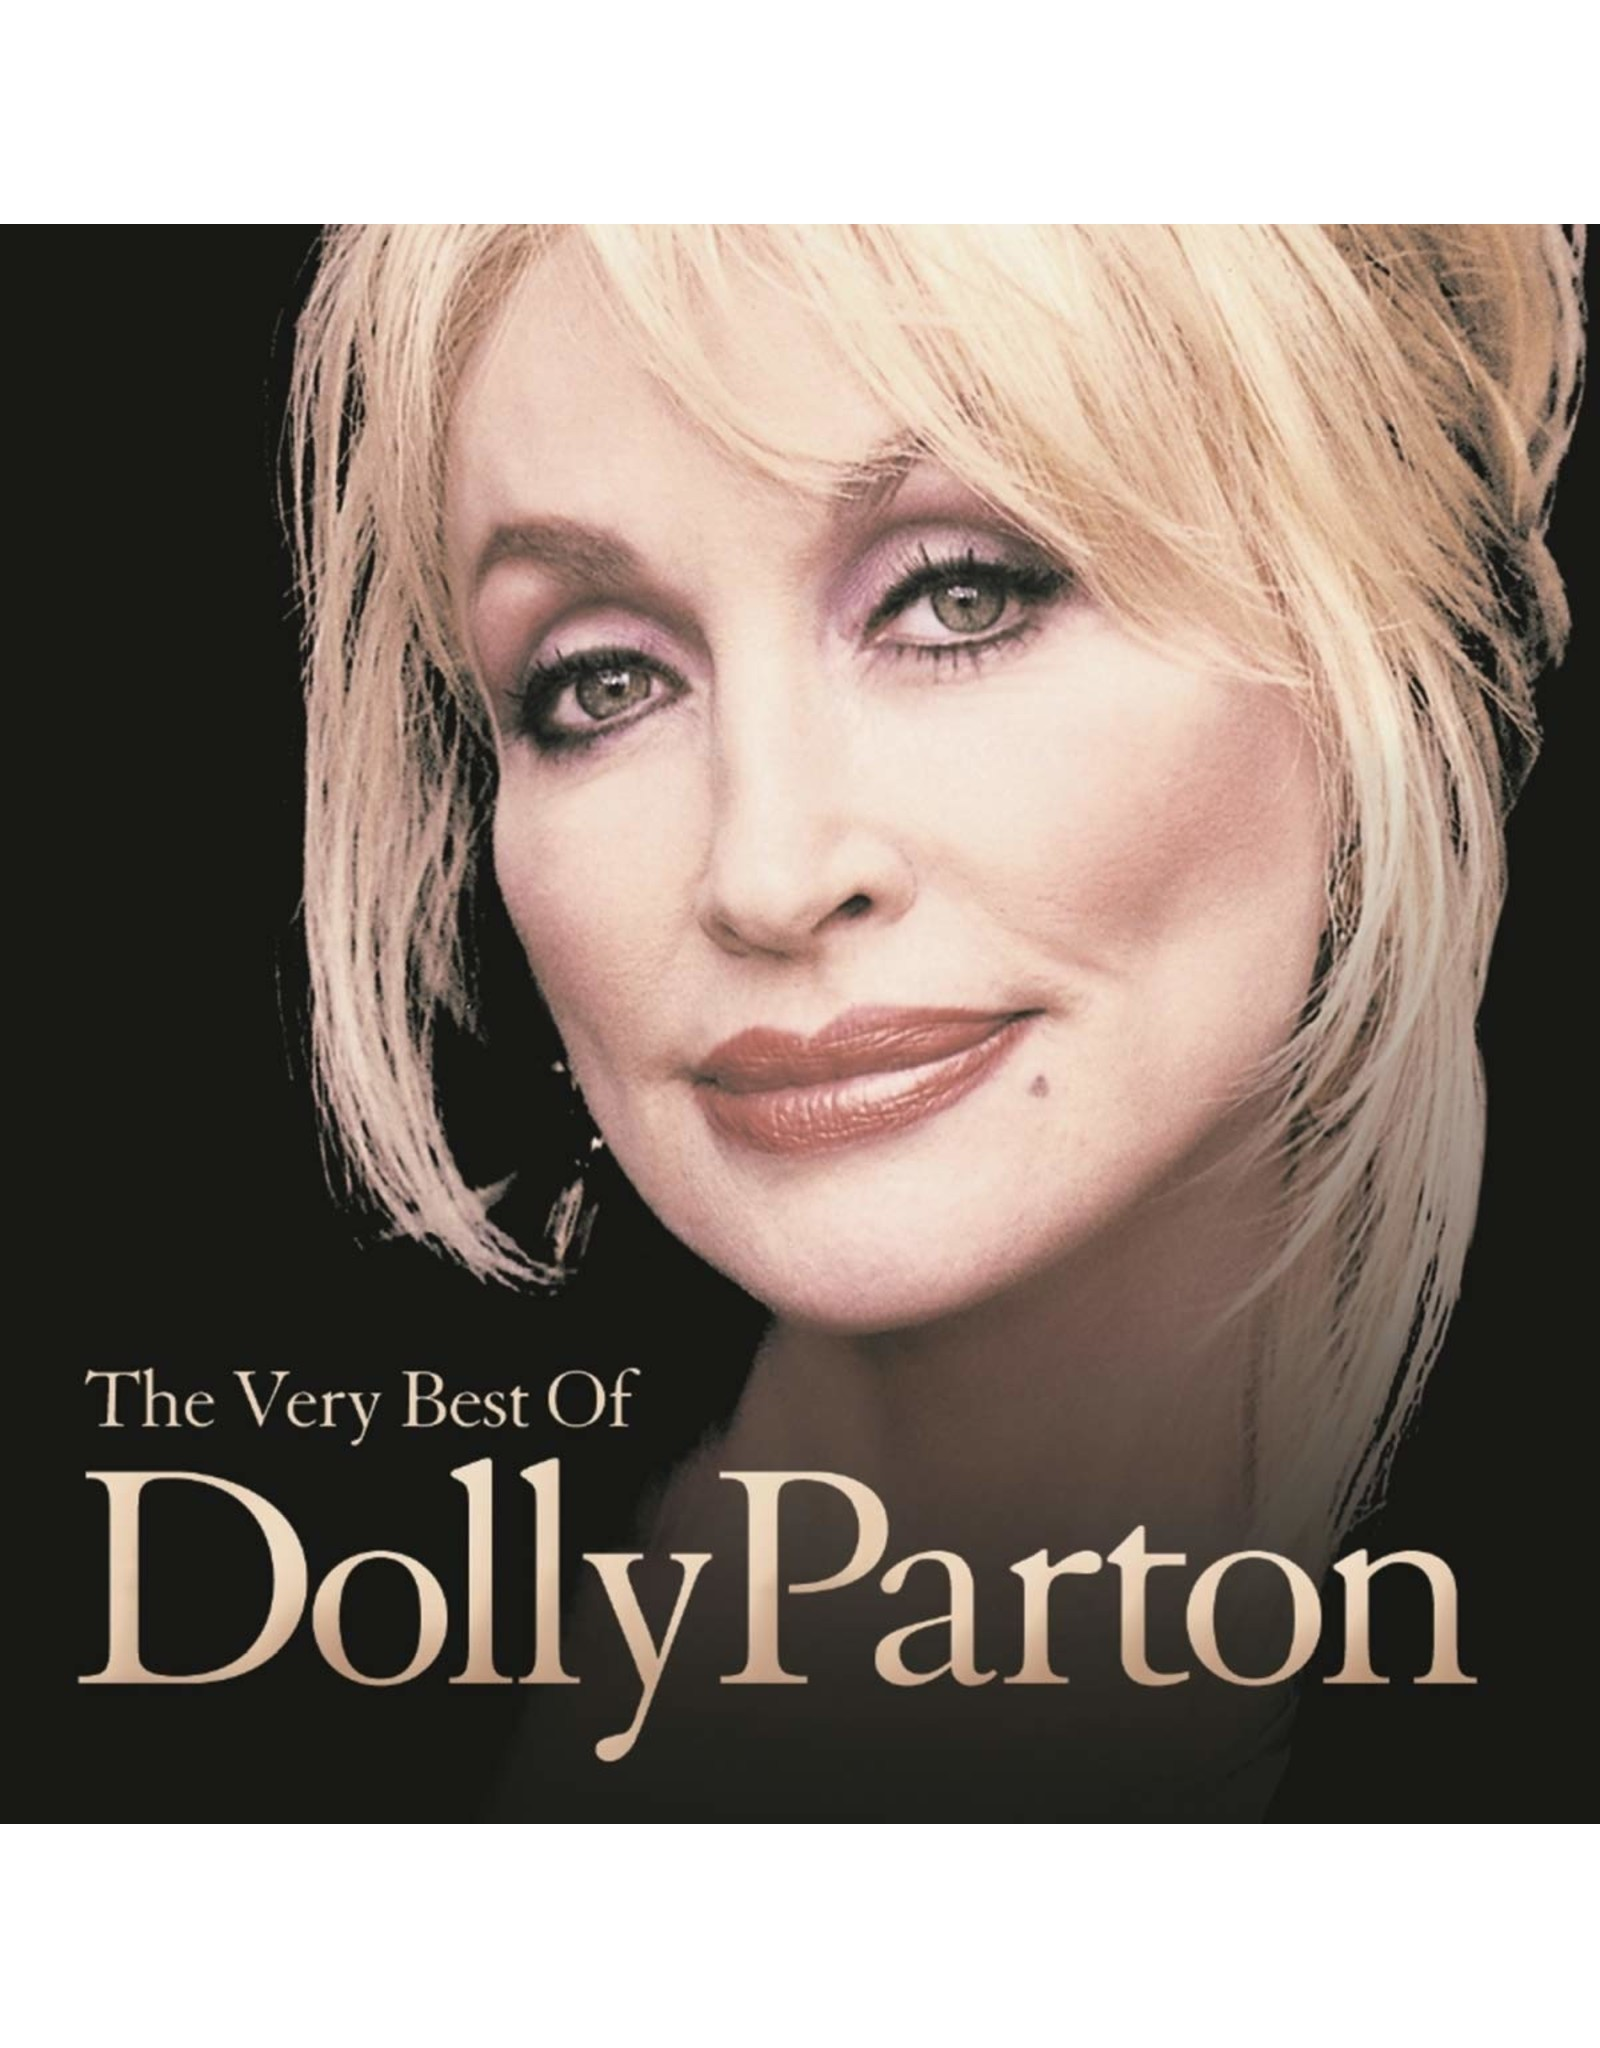 Dolly Parton - The Very Best of Dolly Parton